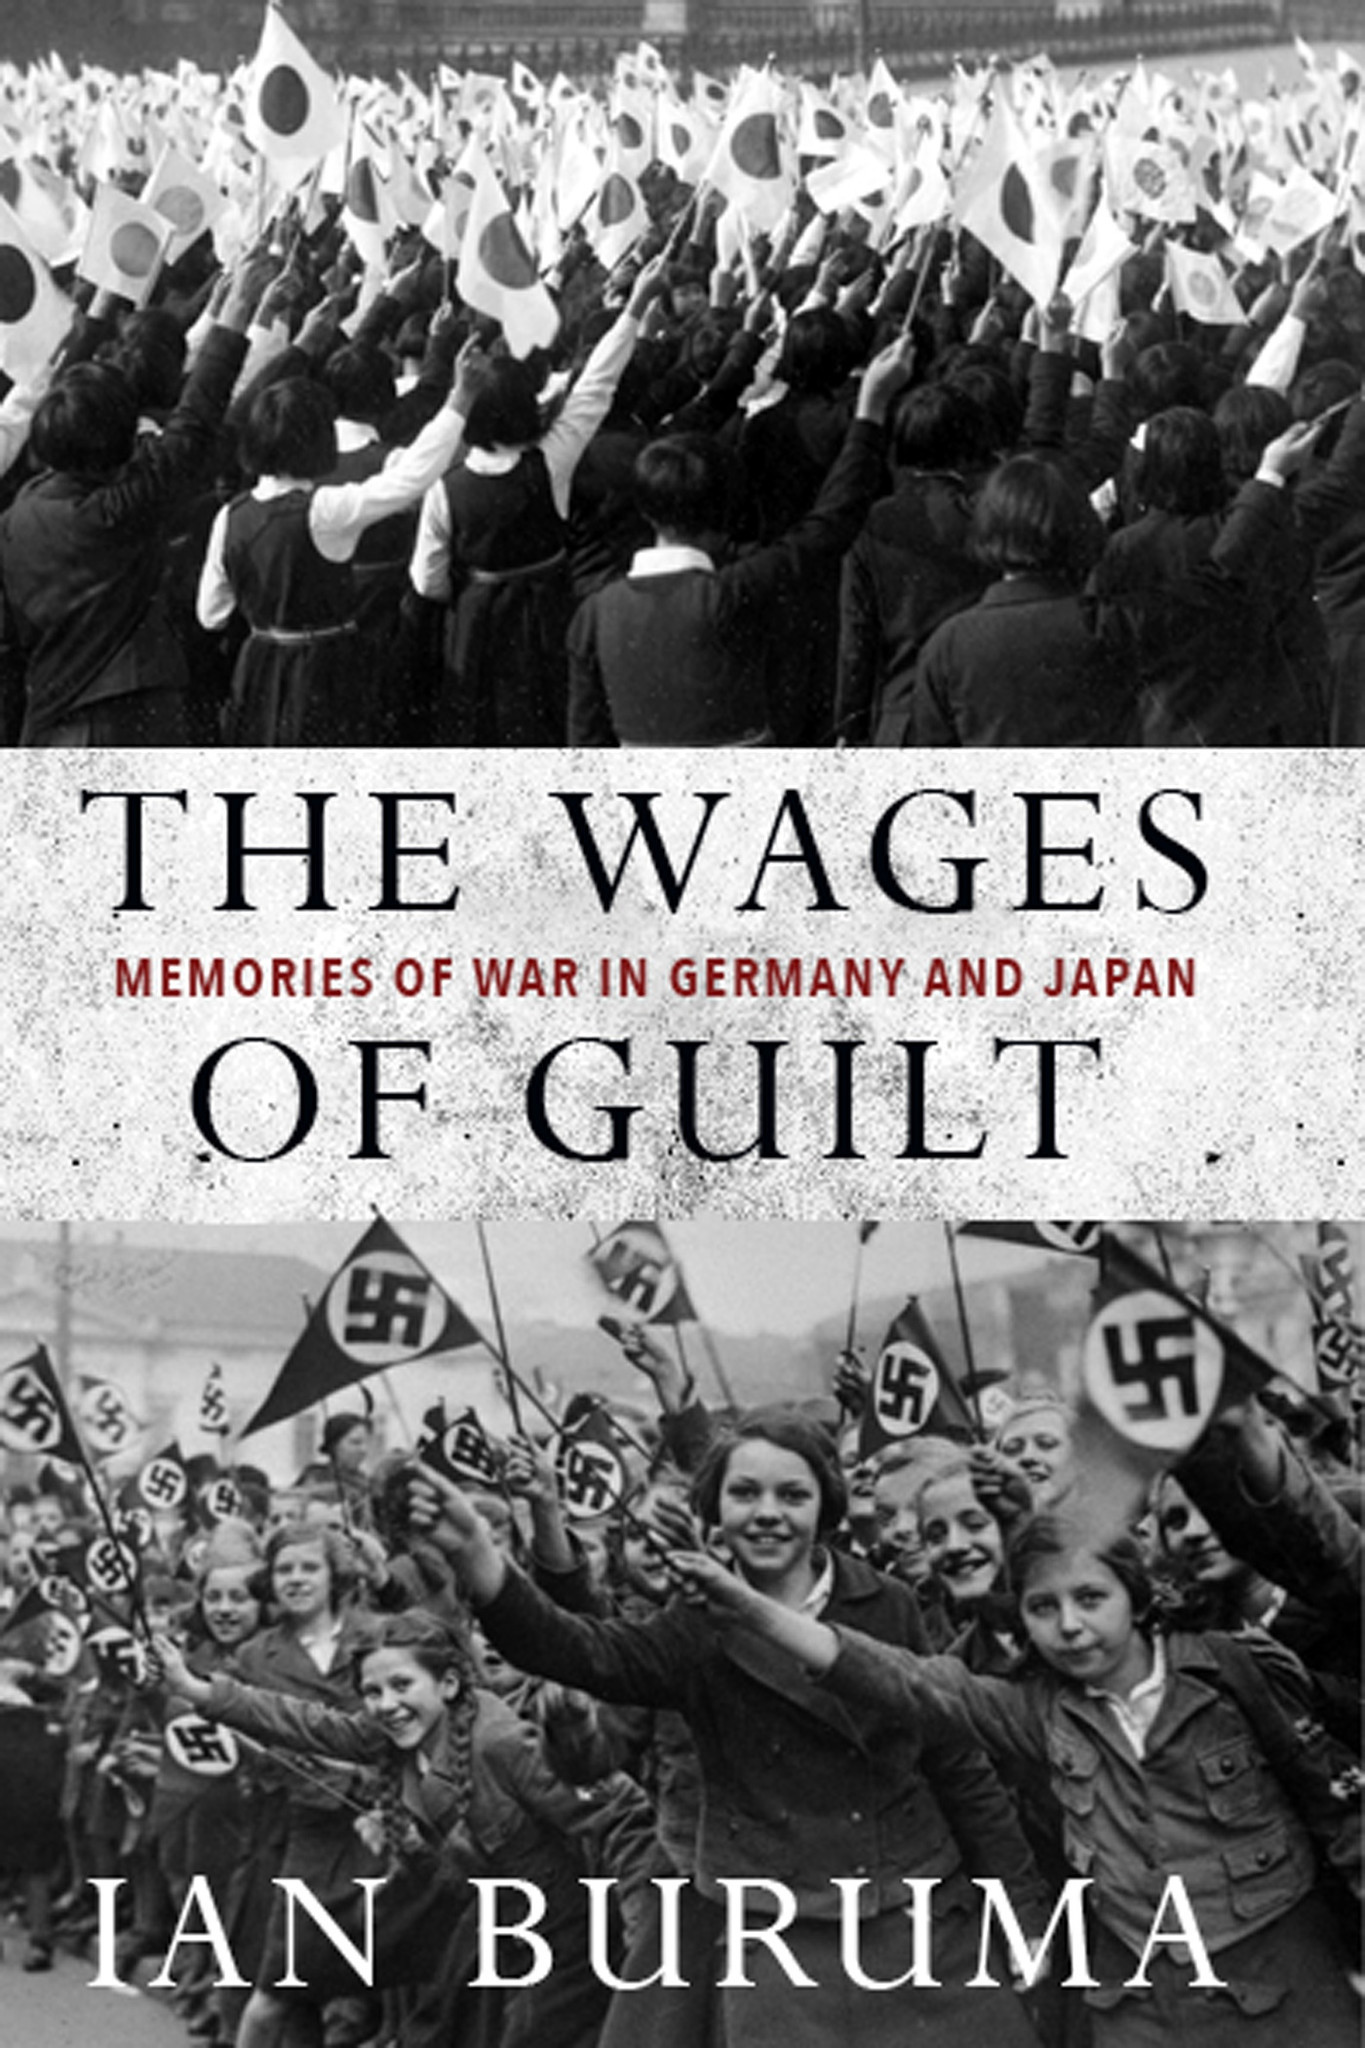 The Wages of Guilt